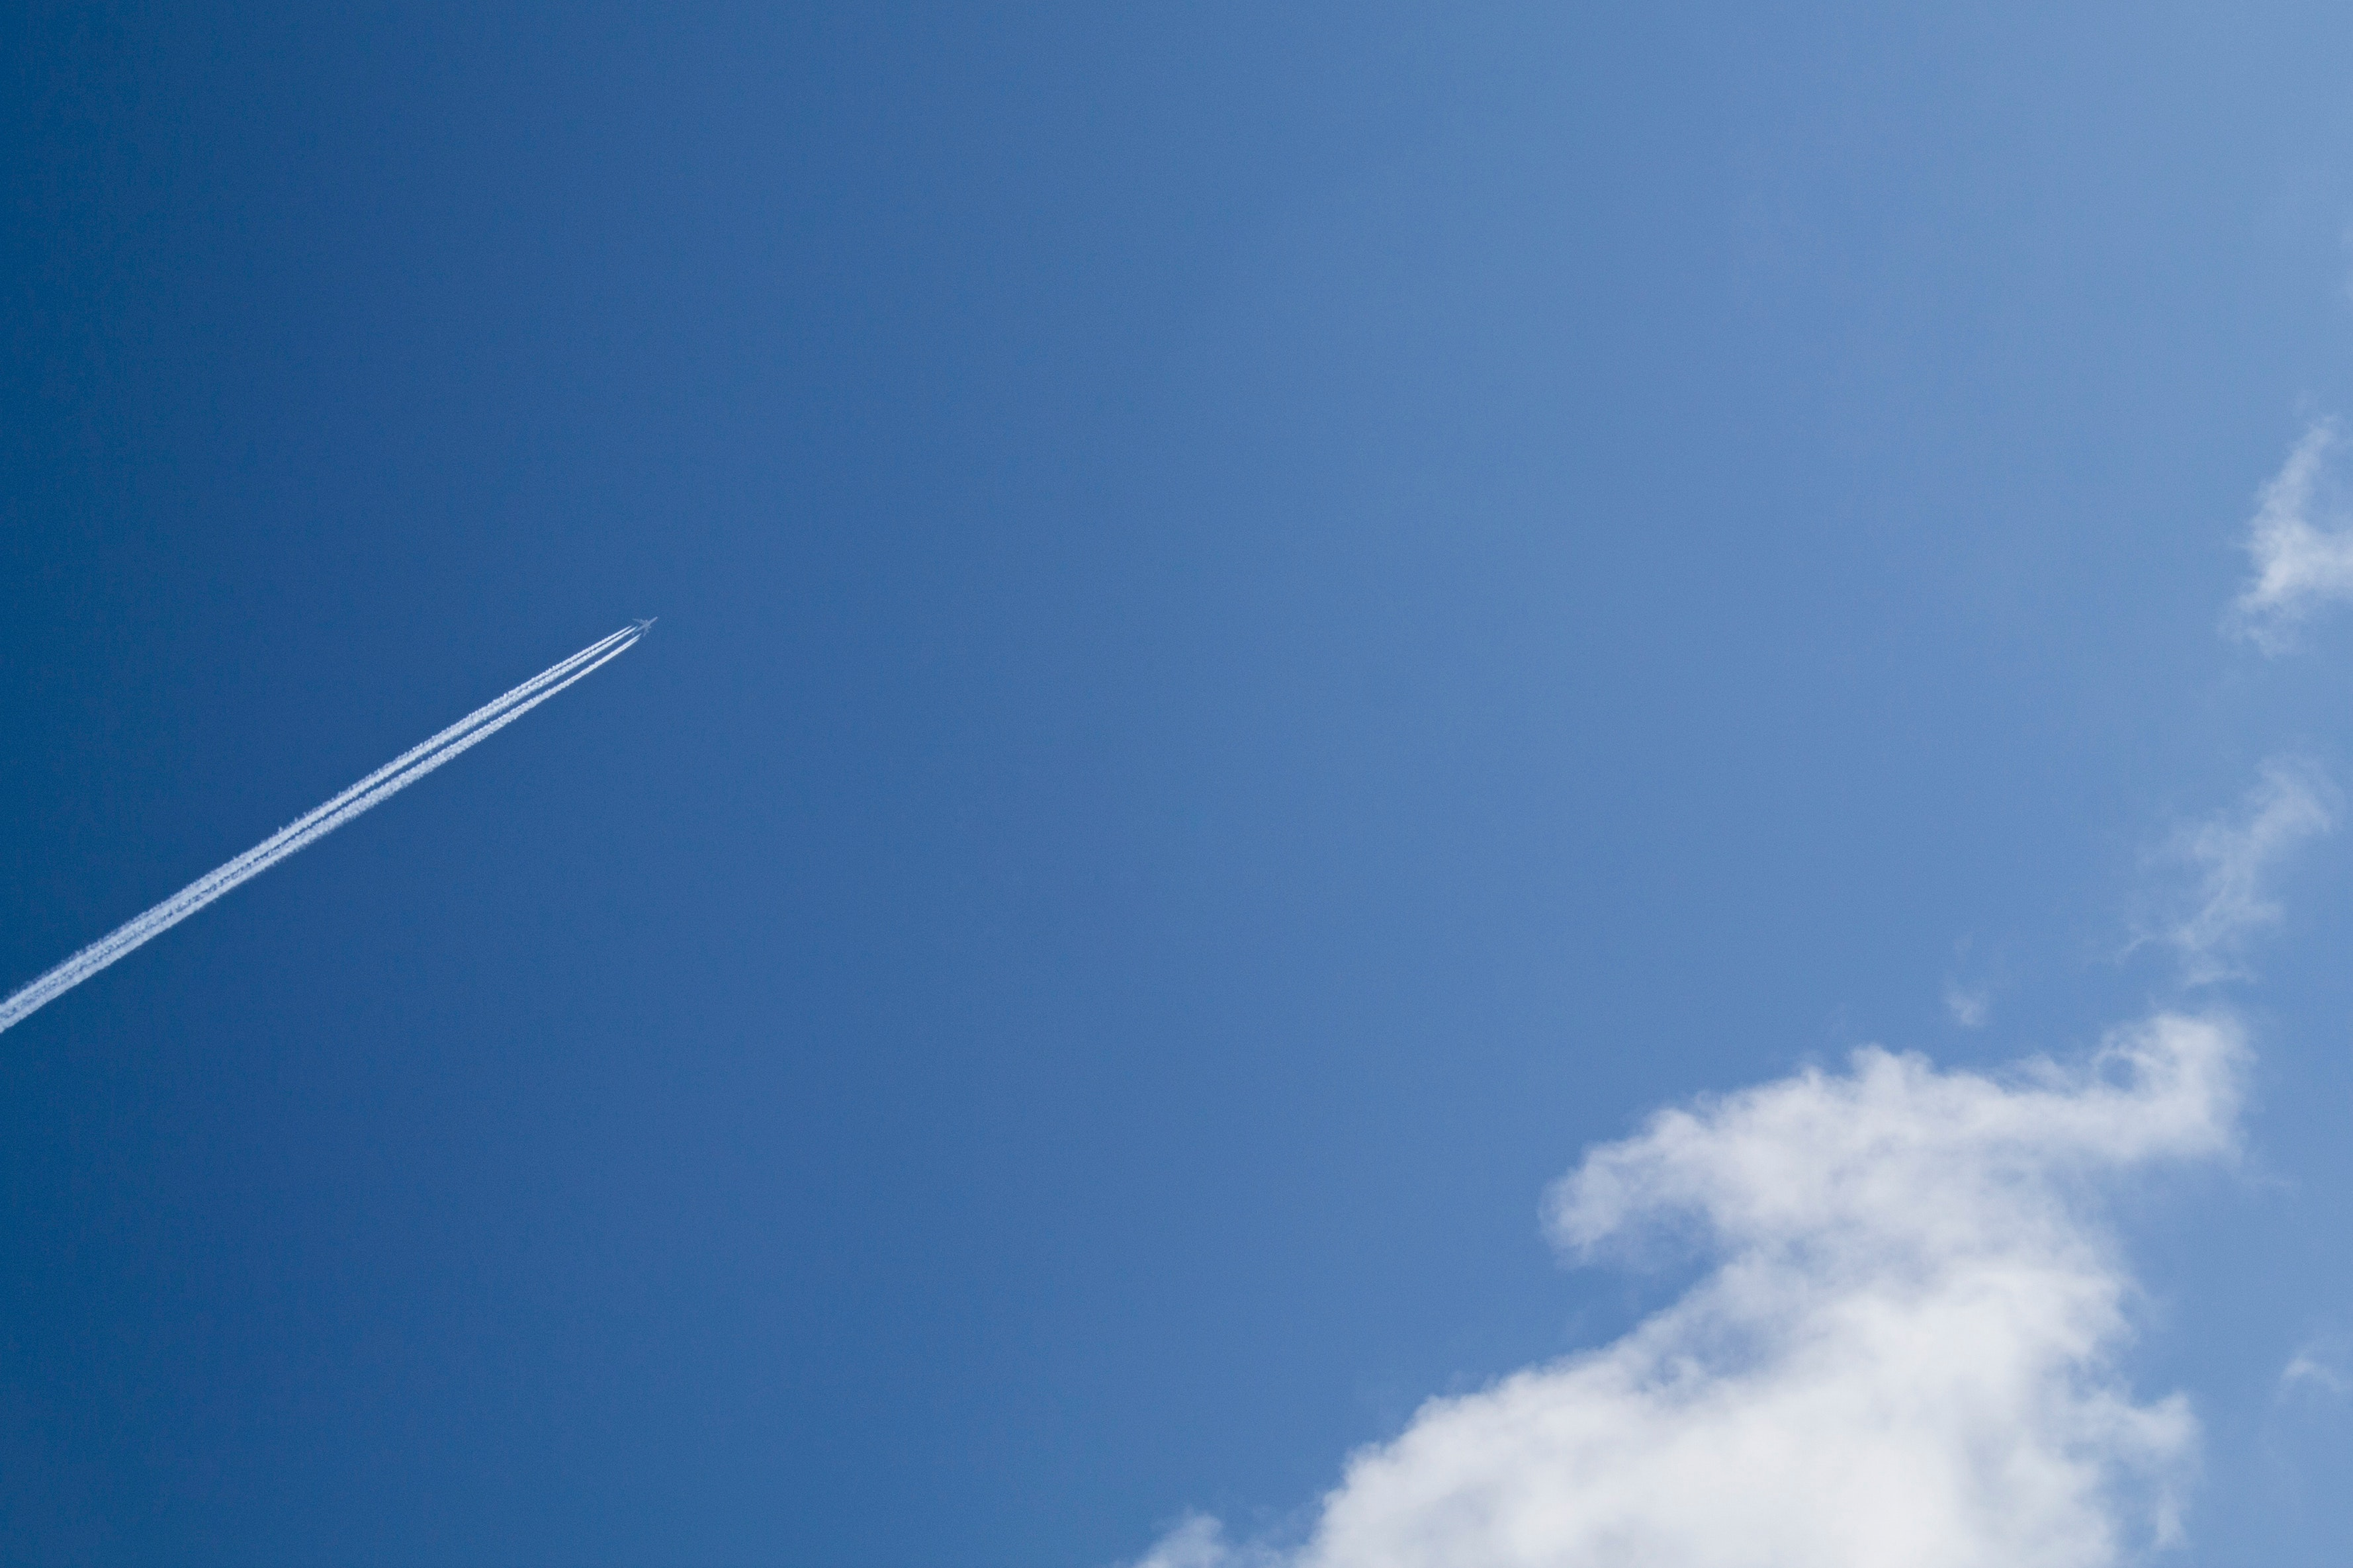 Jet under clear blue sky during daytime photo